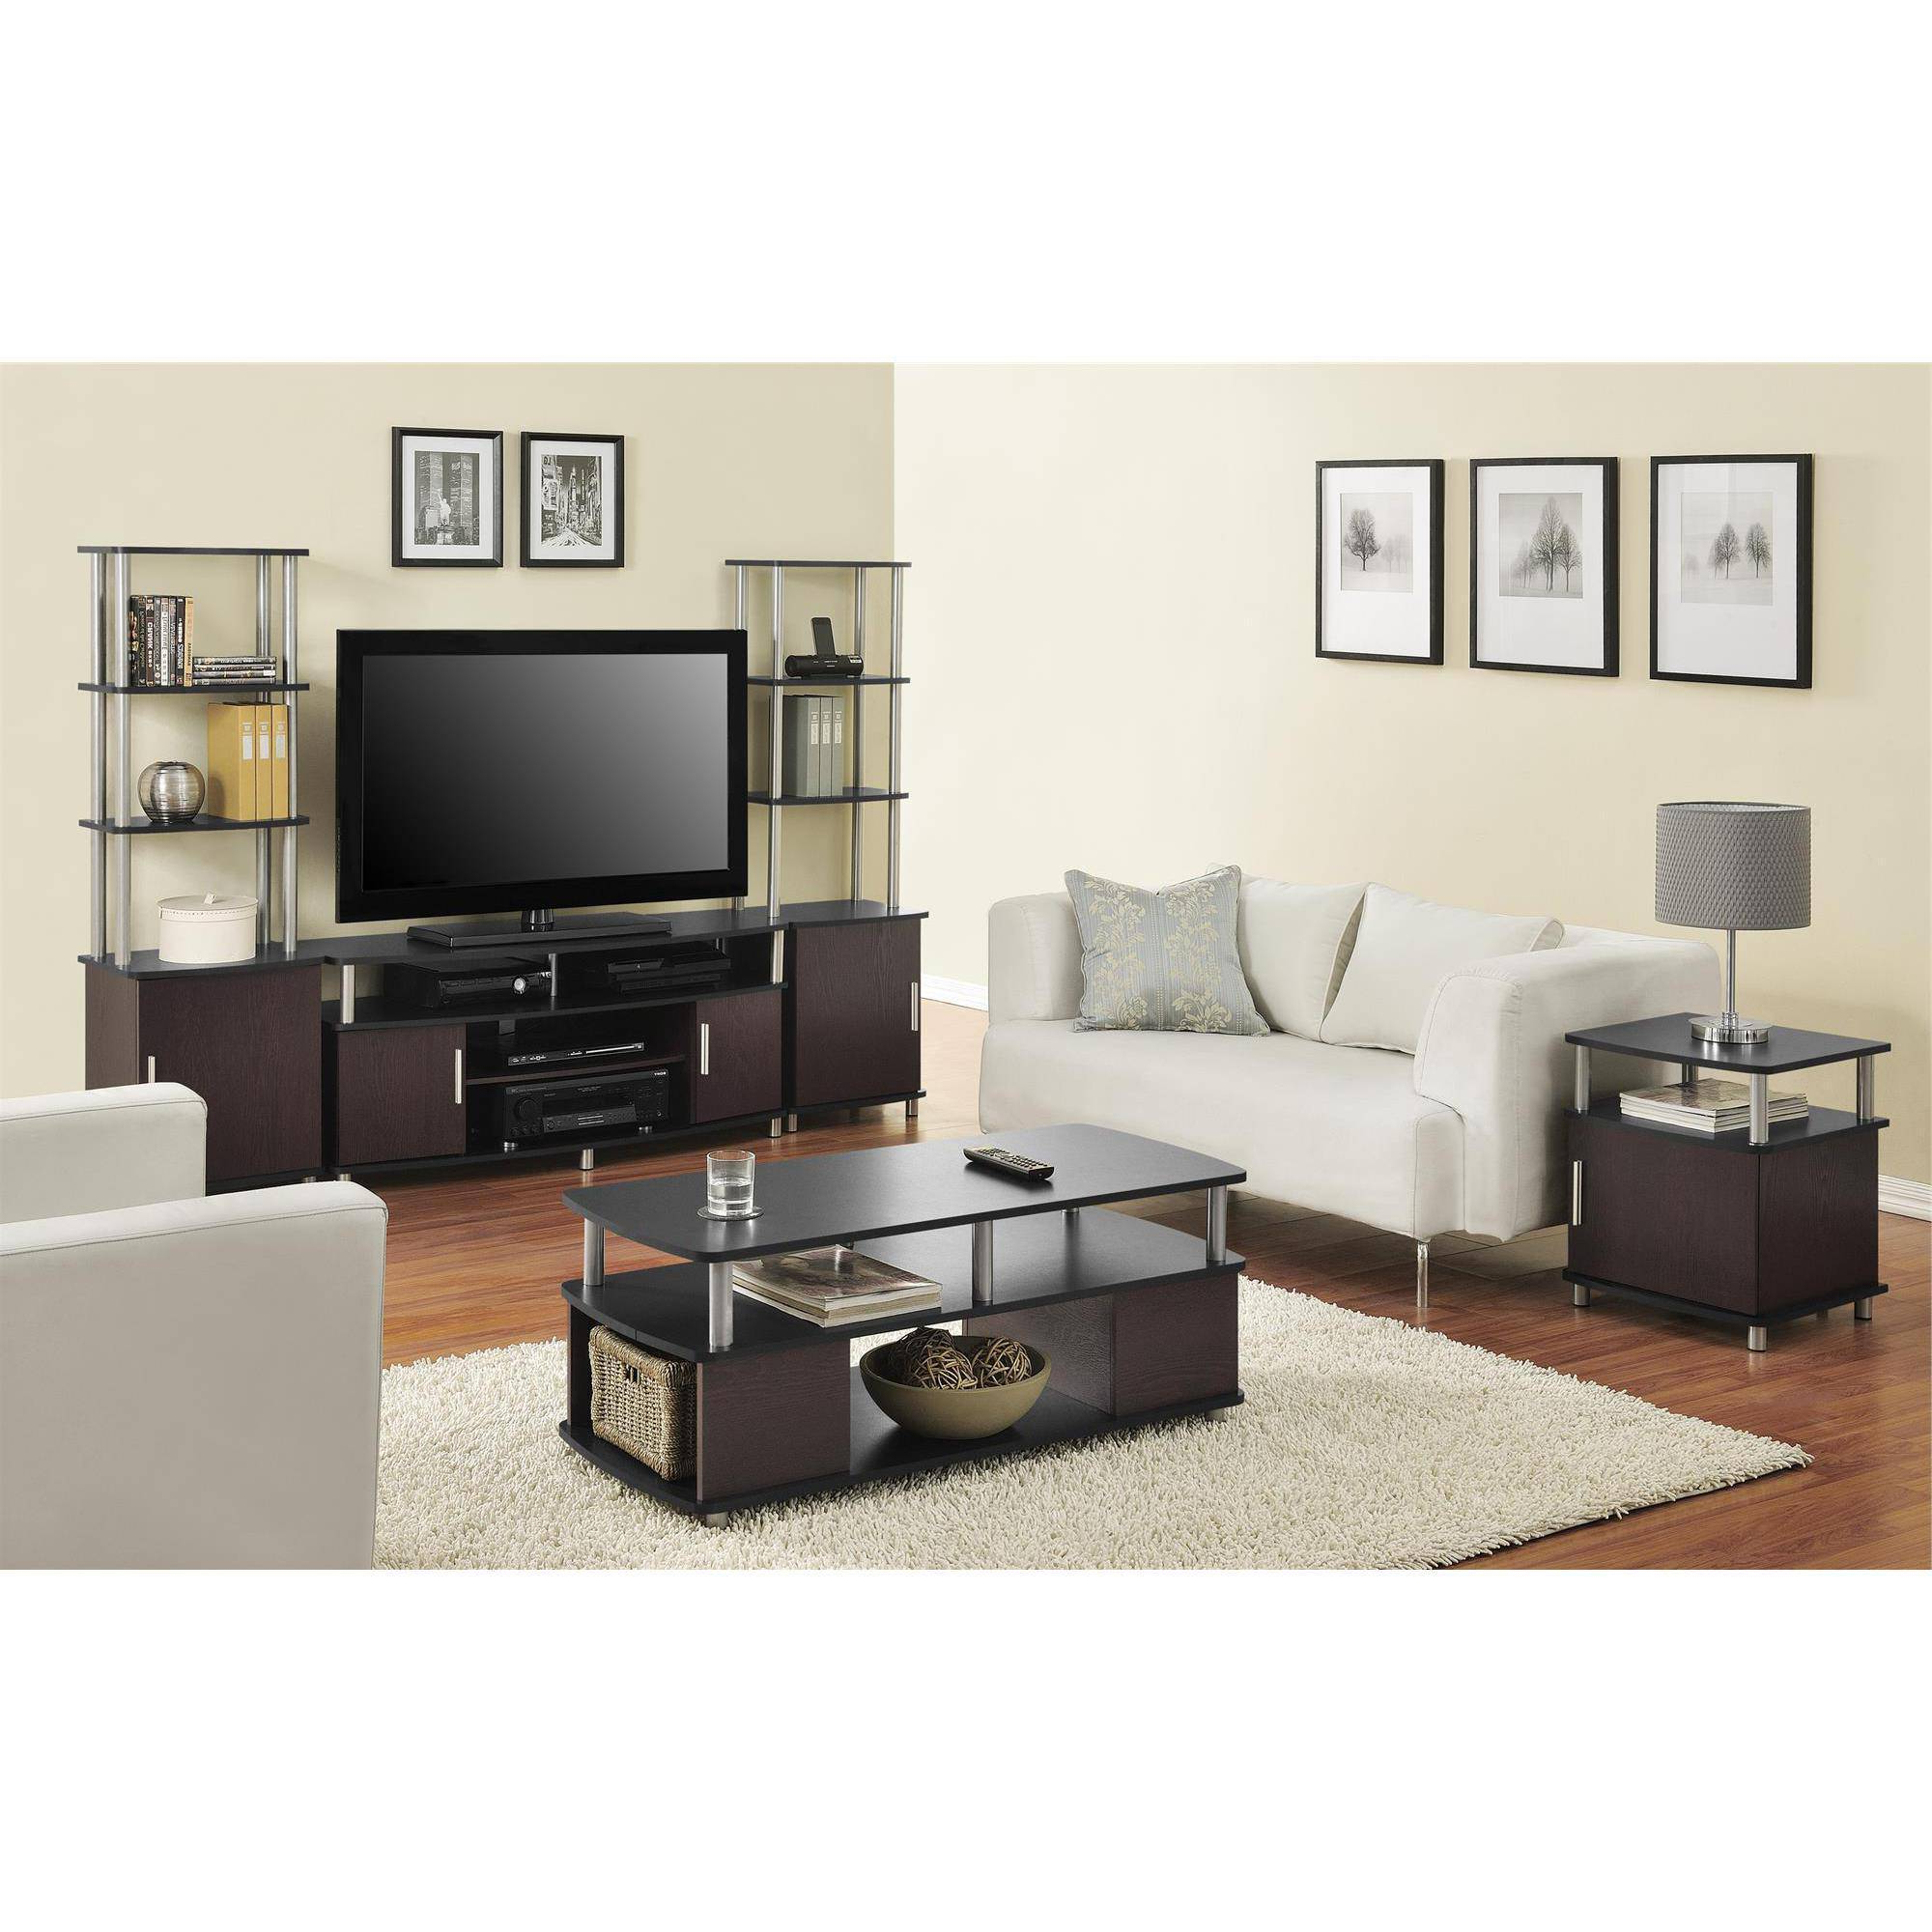 Trendy Matching Tv Stand And Computer Desk Can I Use A Coffee Table As Inside Tv Stand Coffee Table Sets (View 7 of 20)